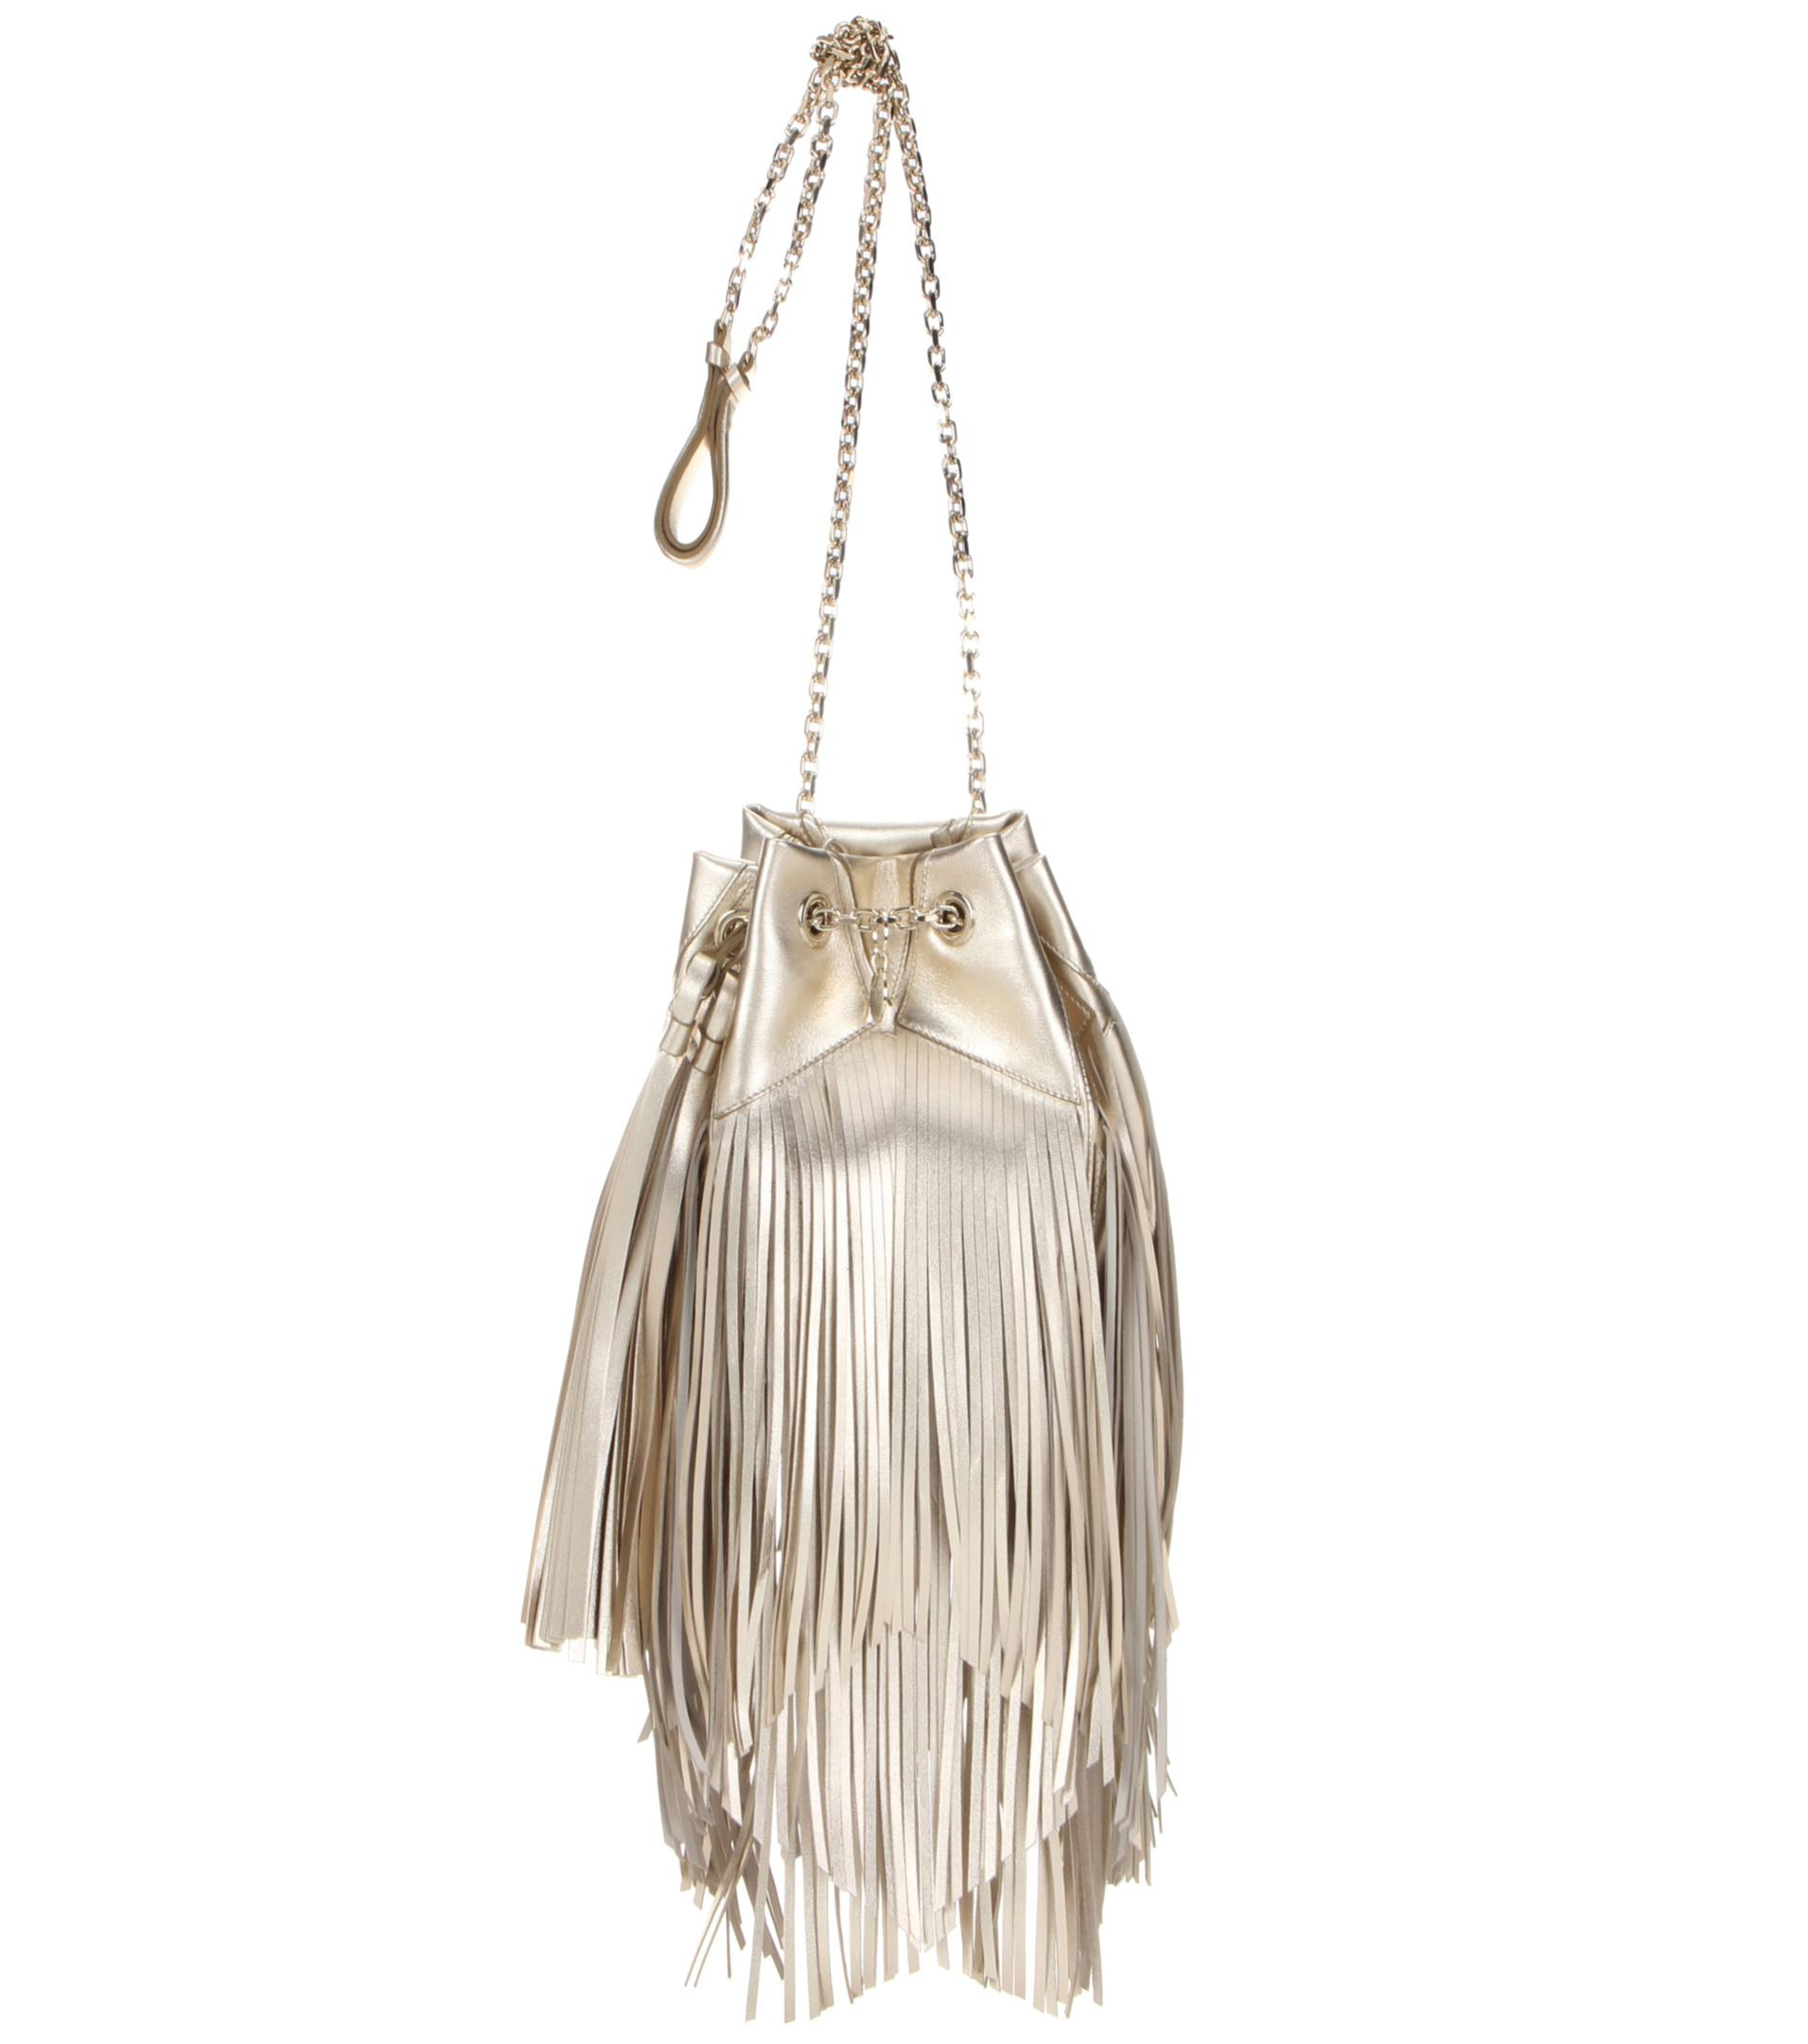 c895f2db4434 Lyst - Roger Vivier Prismick Fringed Metallic Leather Bucket Bag in ...